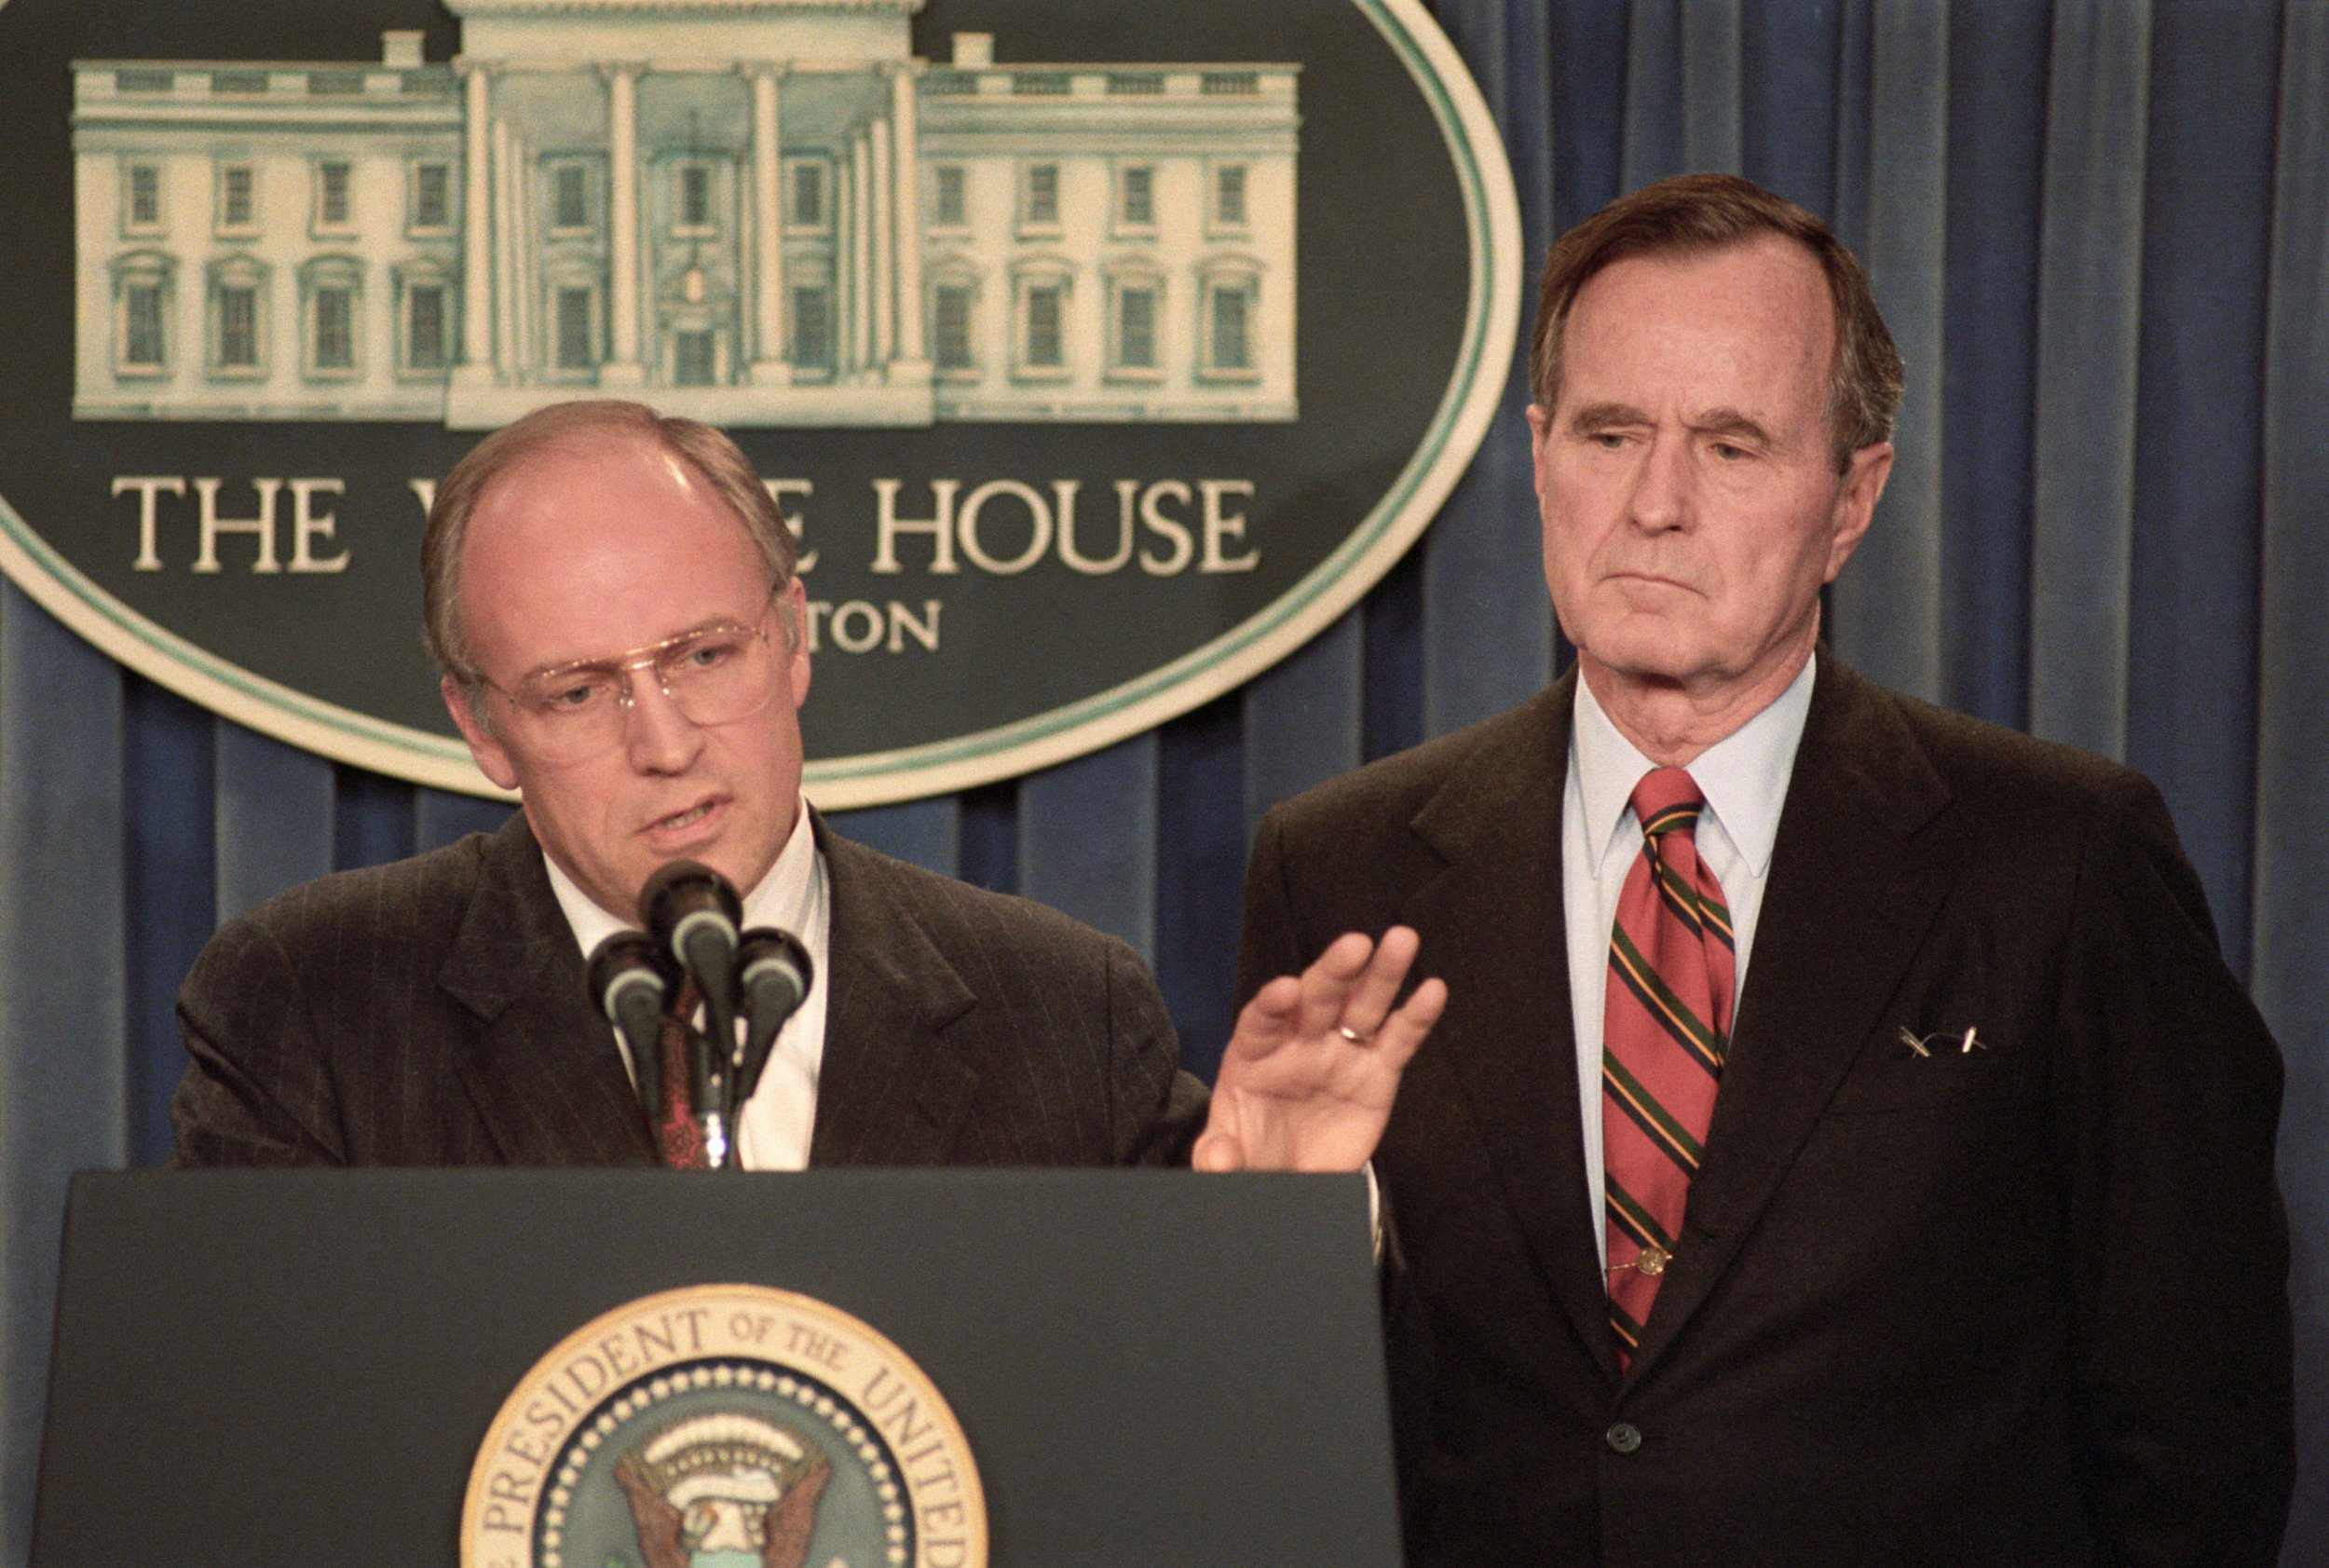 George bush and dick chaney